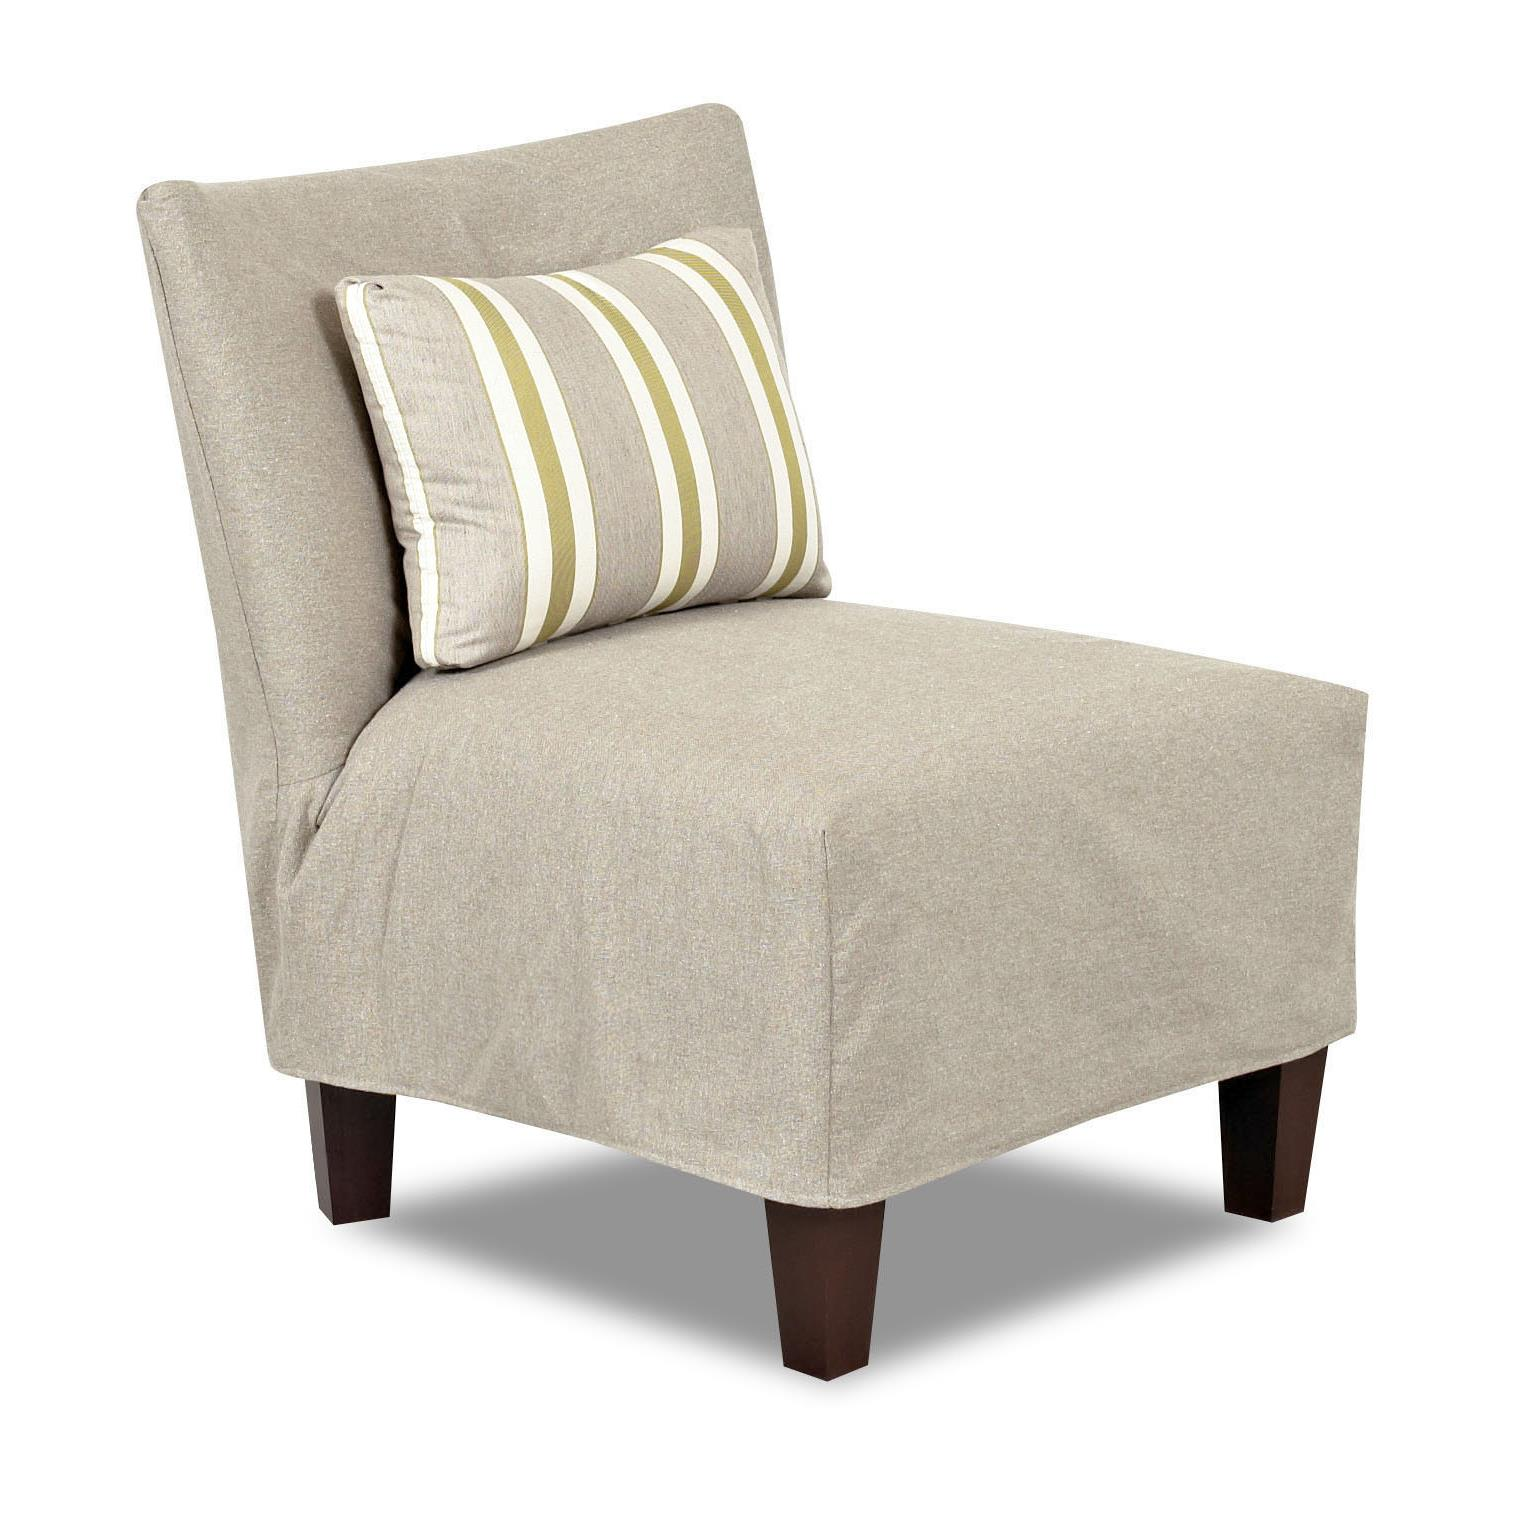 Klaussner Chairs And Accents D48100 Ac Armless Accent Chair With Slipcover Dunk Bright